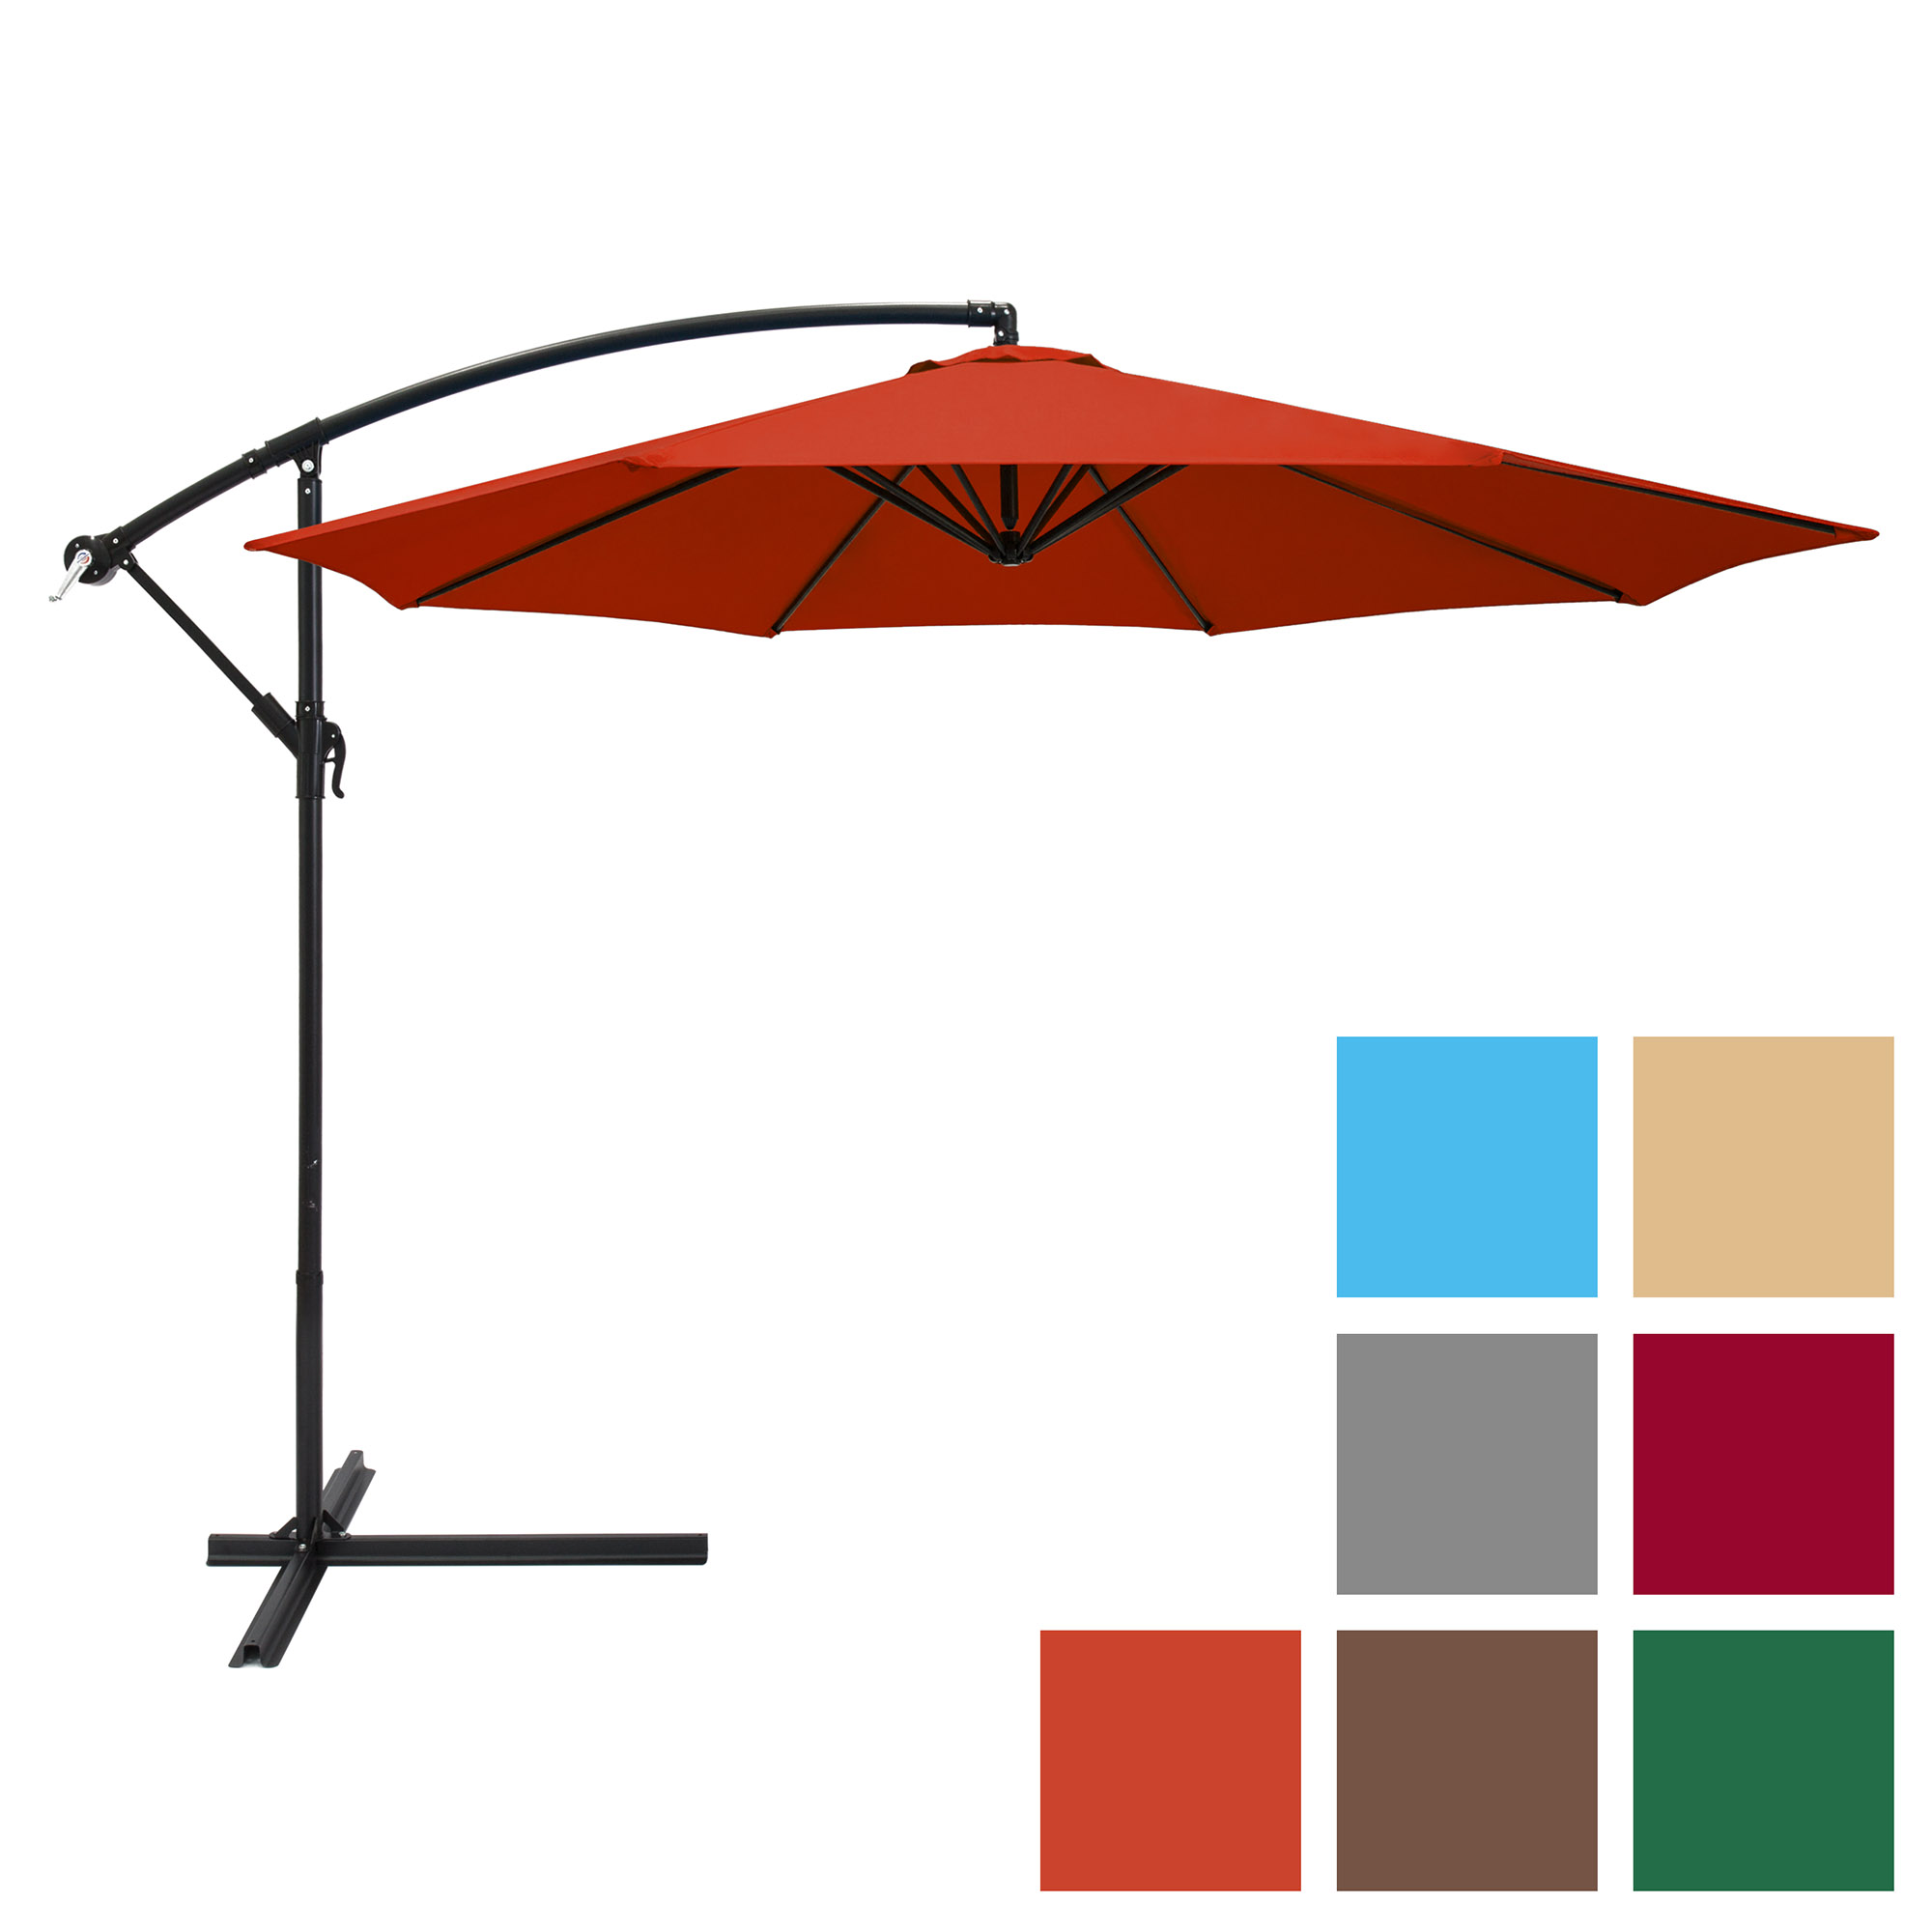 42 Inches 10 Ribs Men RLDSESS Autumn Compact Patio Umbrella Ladies Automatic Opening and Closing,Park Clearing in Autumn,Windproof Rainproof